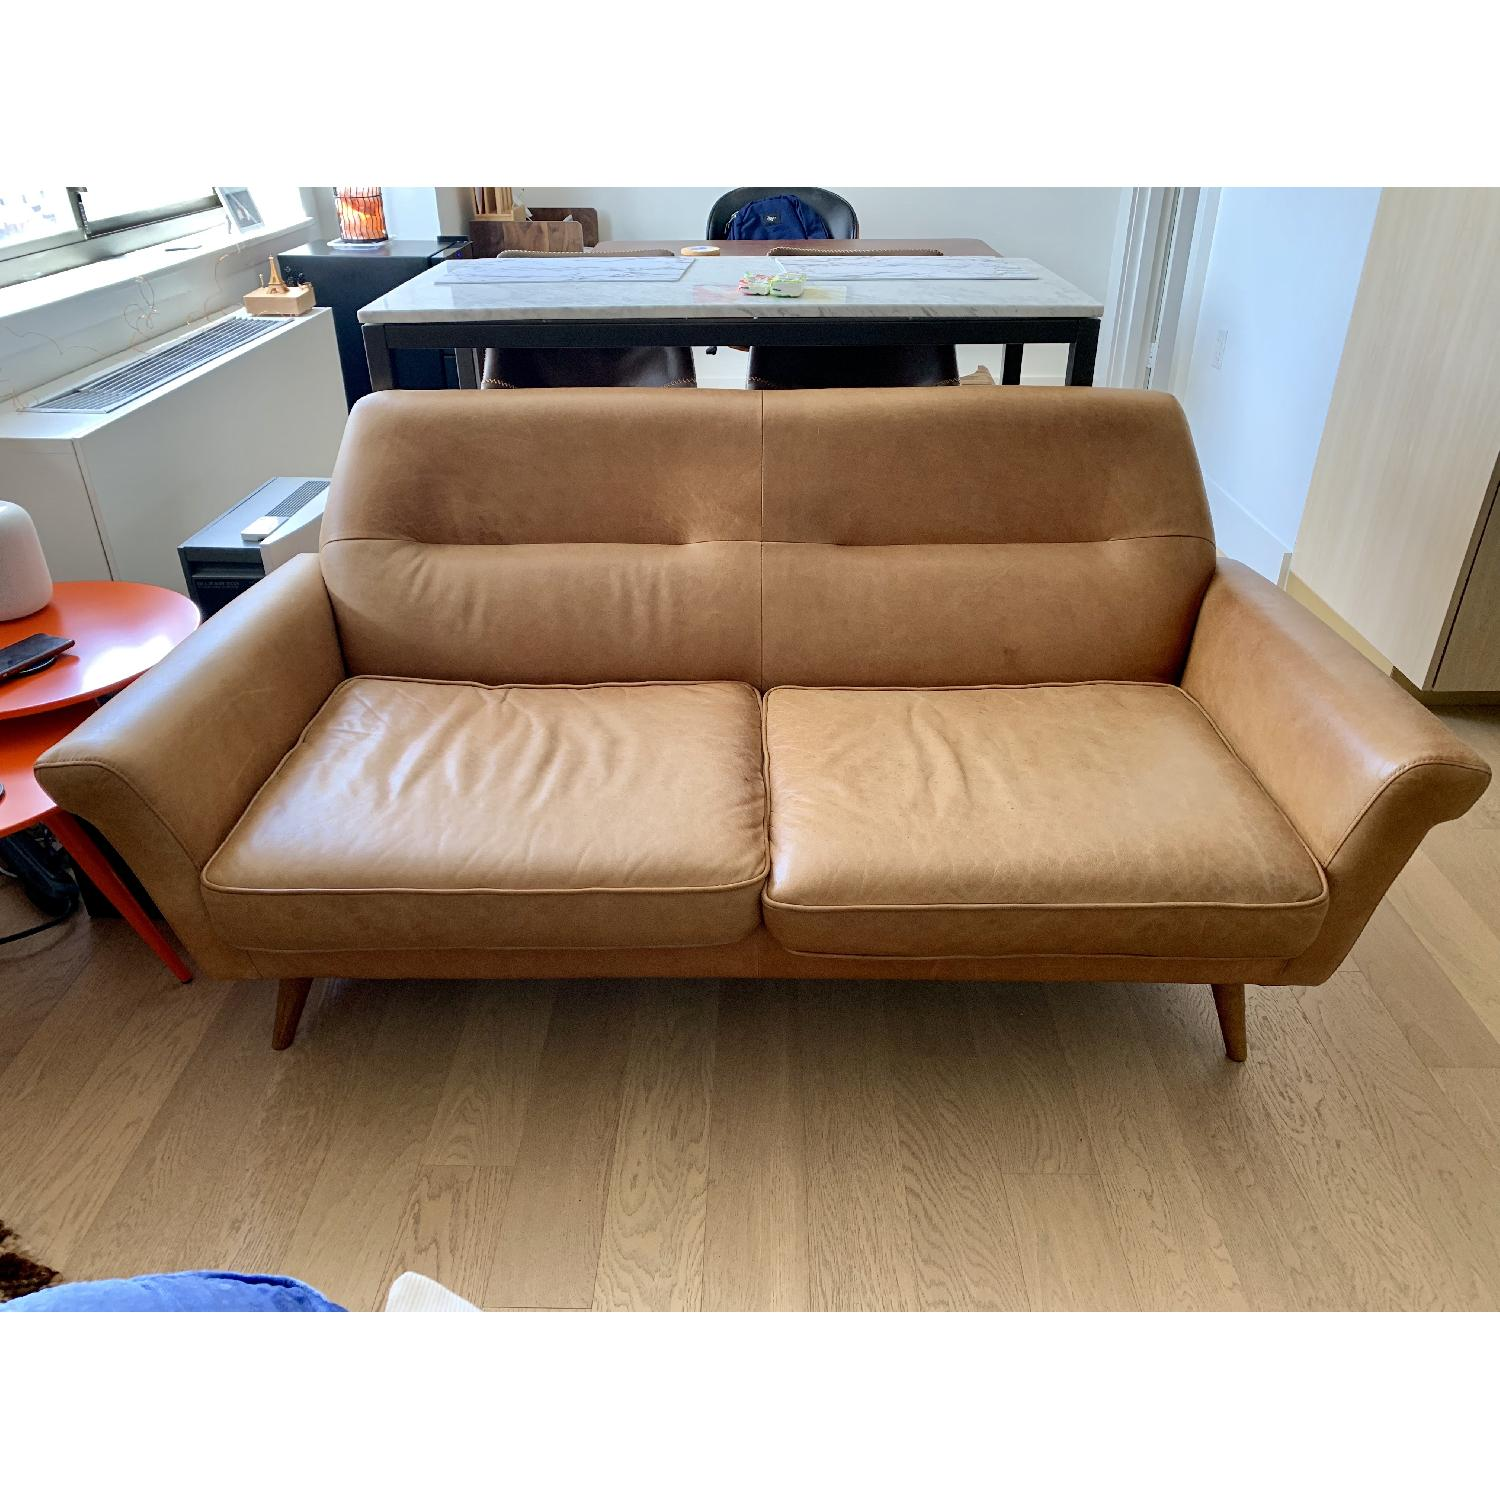 Fabulous West Elm Denmark Leather Loveseat Aptdeco Unemploymentrelief Wooden Chair Designs For Living Room Unemploymentrelieforg